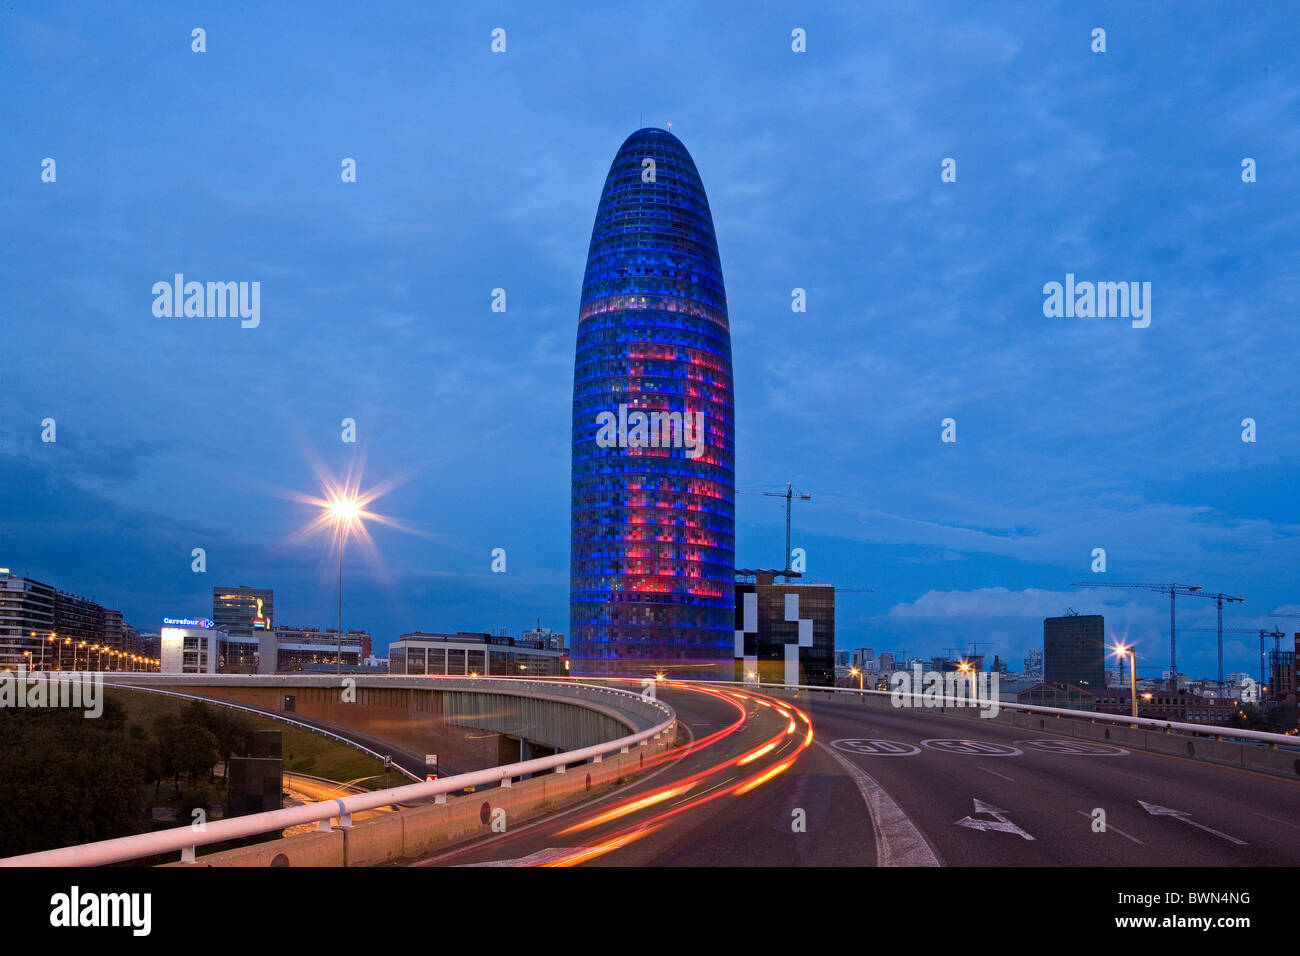 Spain Europe Barcelona City Agbar Tower Torre Agbar Jean Nouvel architecture modern high riser High-rise buil - Stock Image